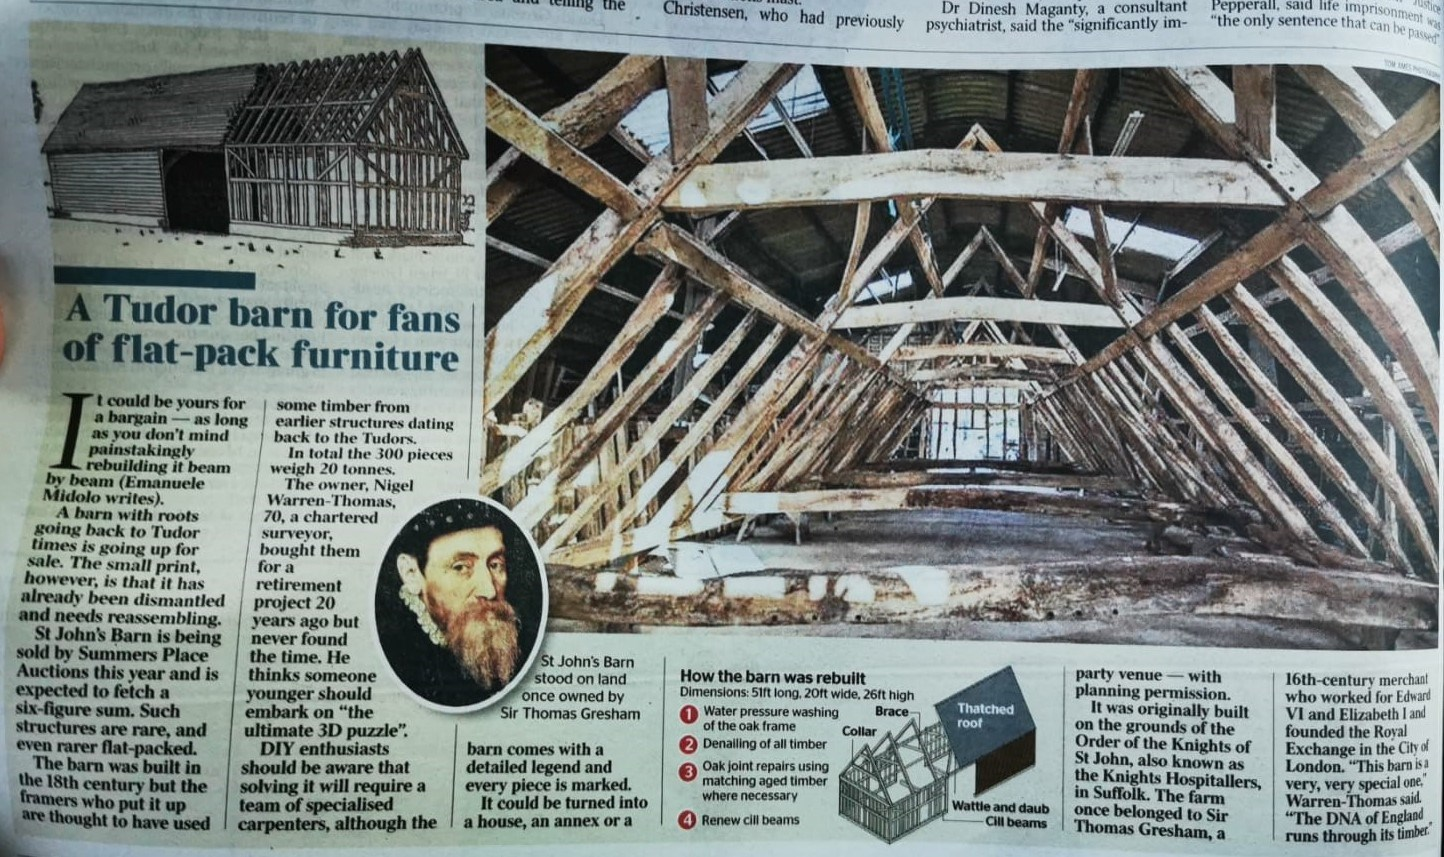 Summers Place Auctions to sell the ultimate 3D Puzzle - St John's Barn